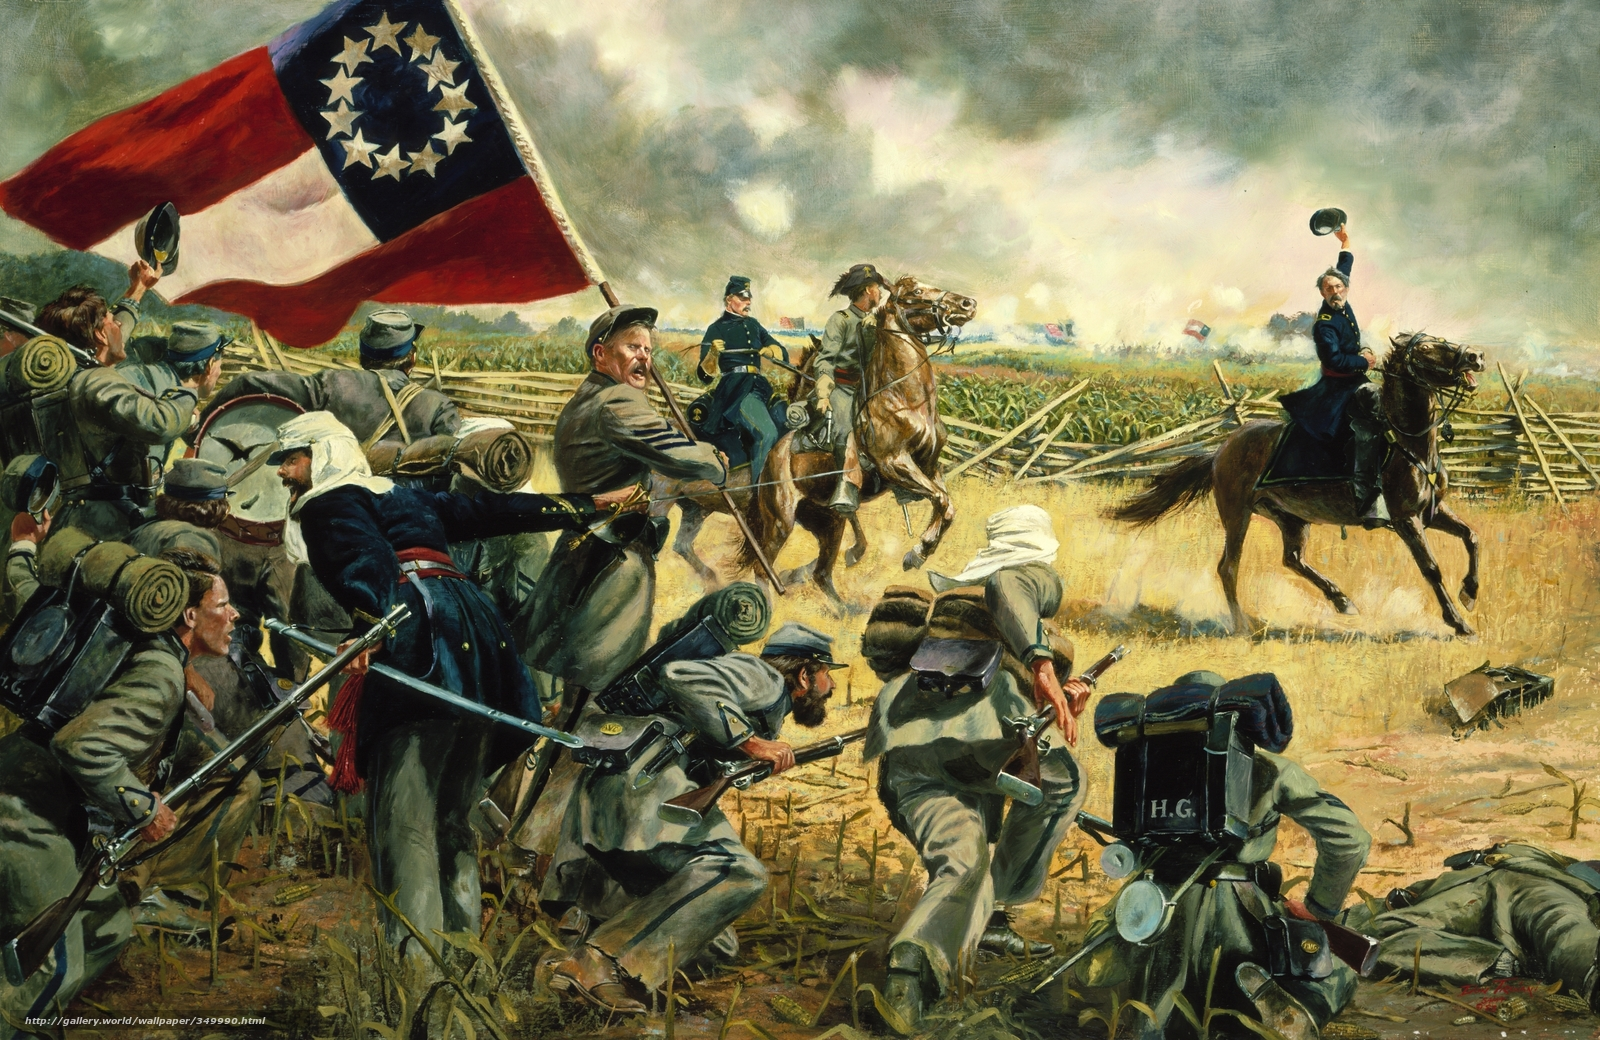 essays on the american revolutionary war The revolutionary war greatly influenced the american society and finally resulted in an economically stable and independent country that has achieved victory in spite of facing many hardships impact of american revolutionary war.